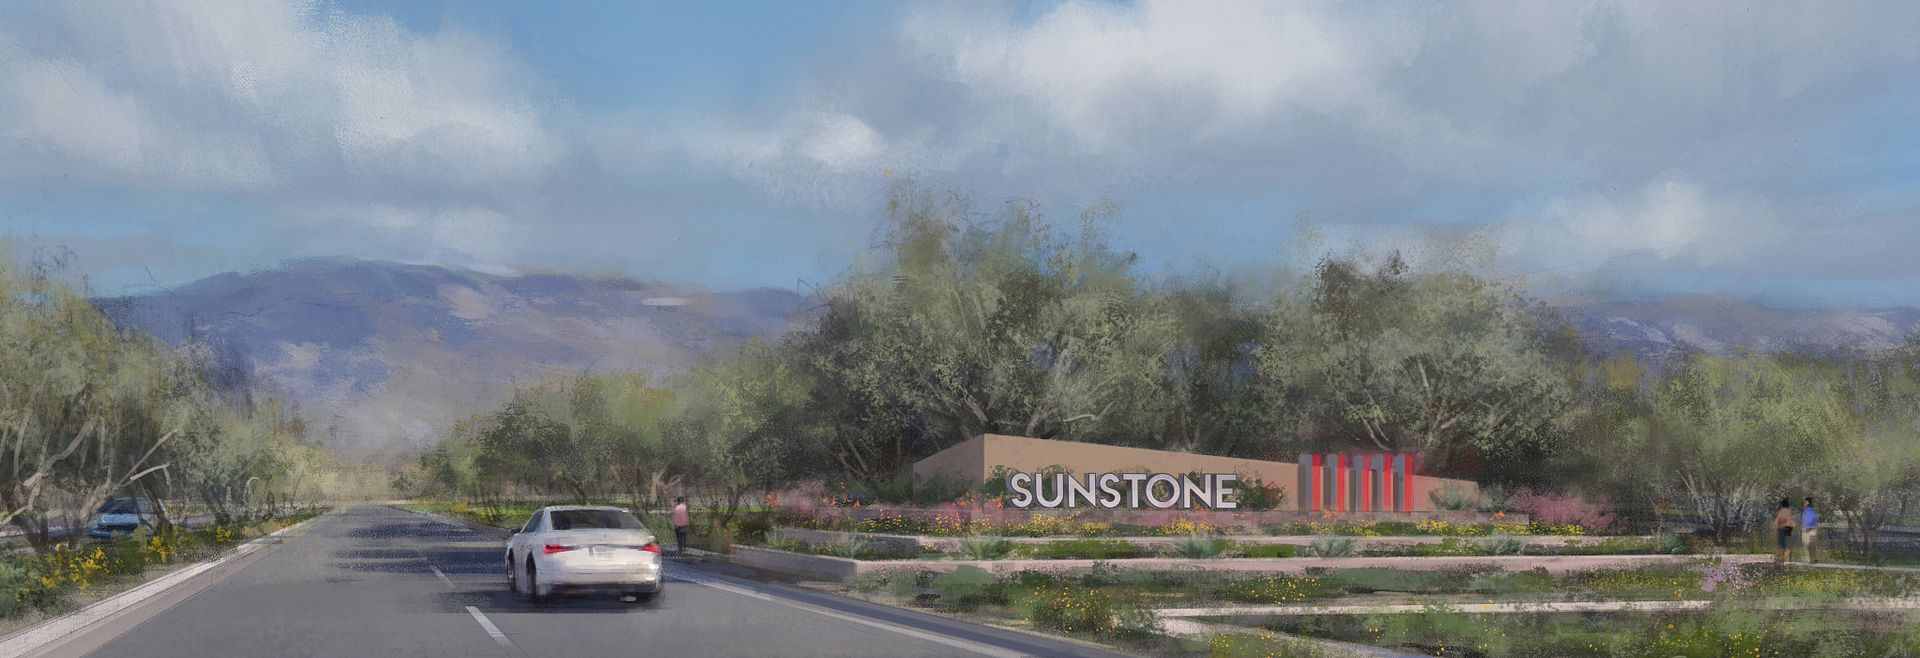 Trilogy Sunstone Masterplan Entrance